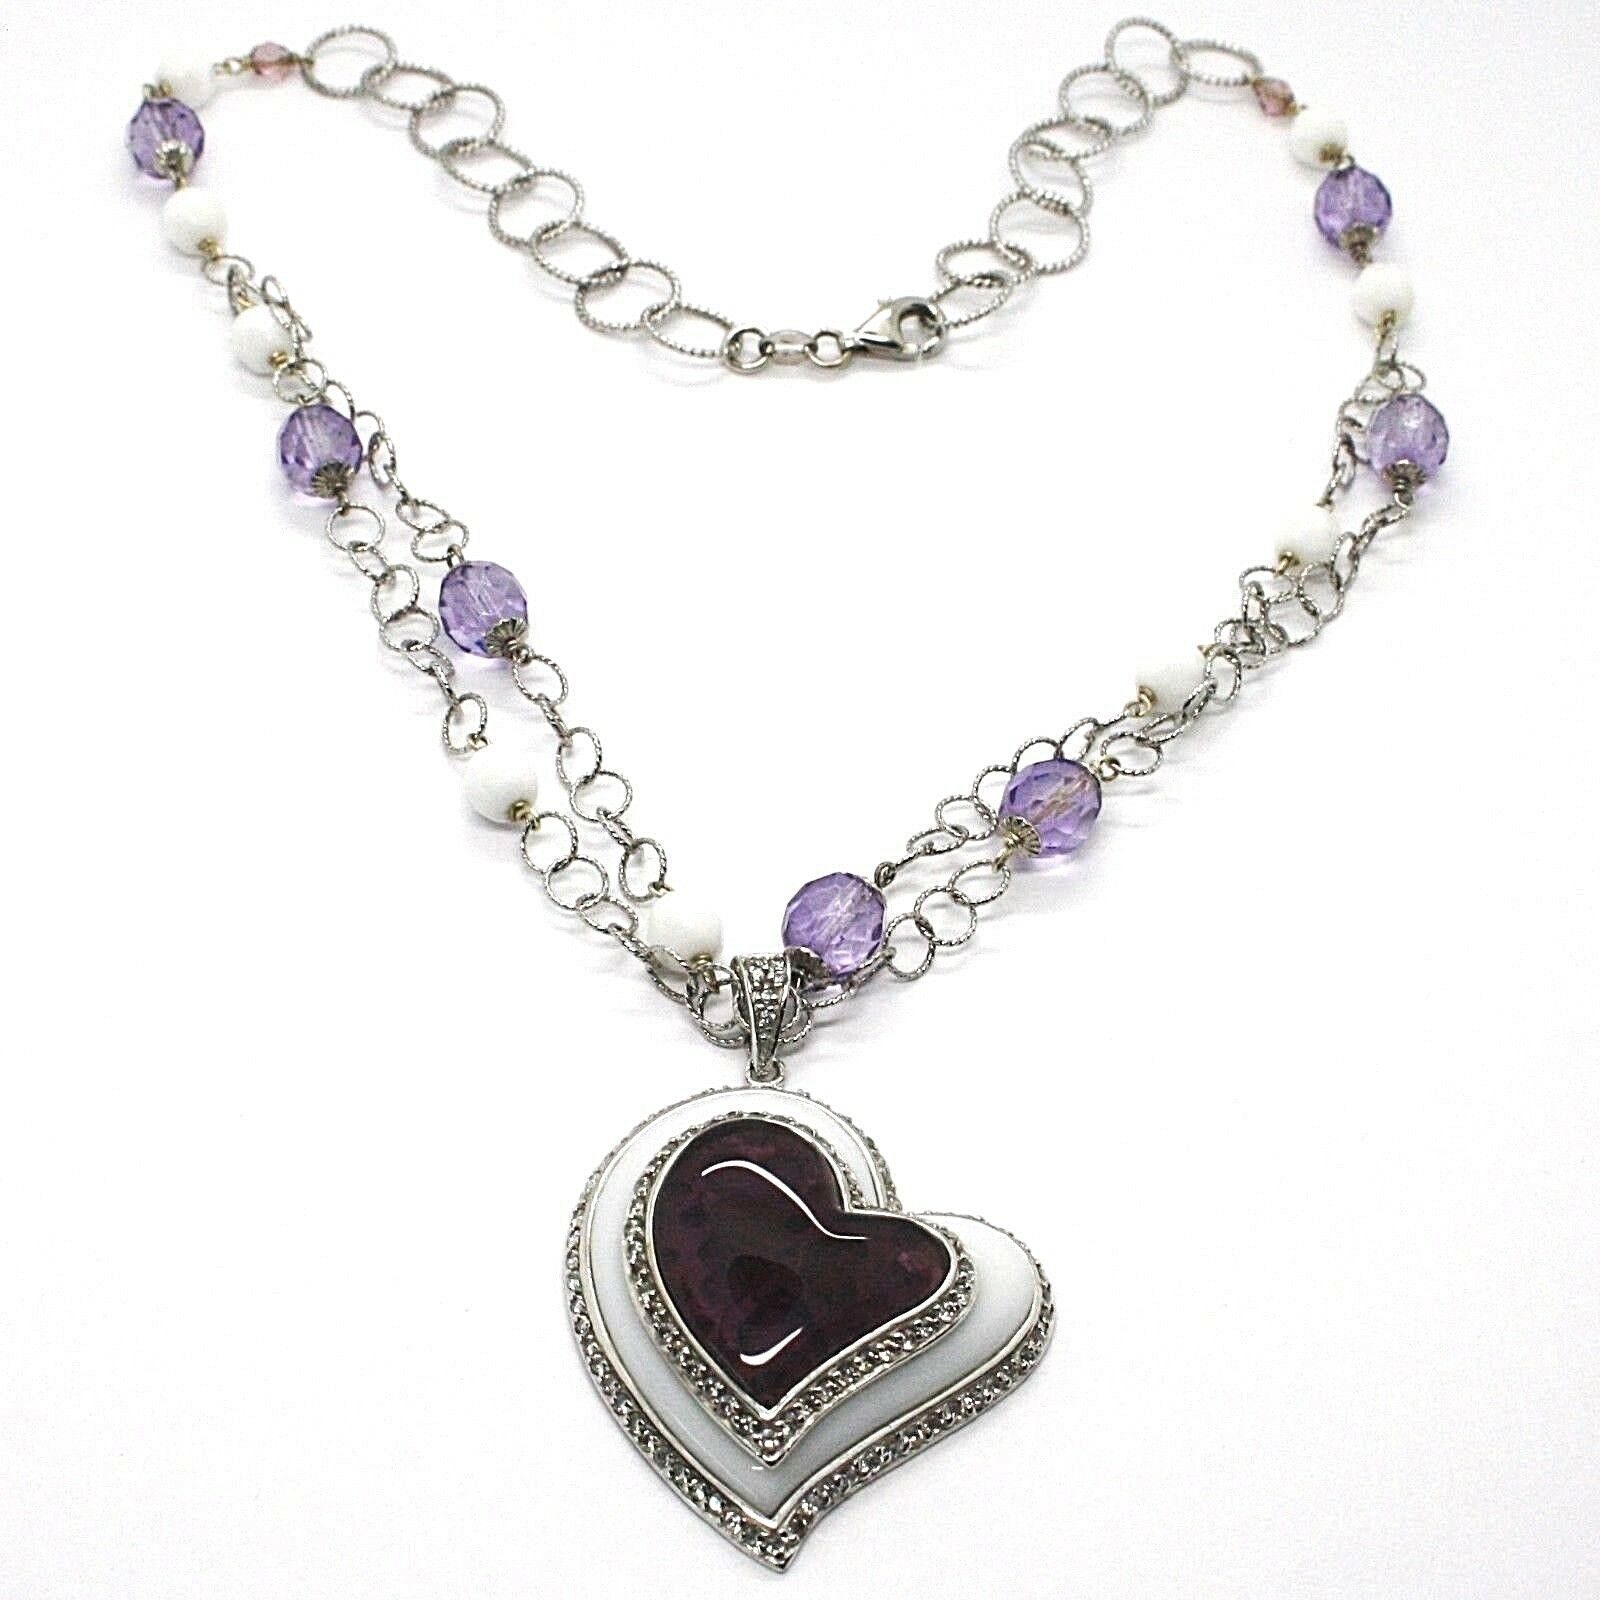 Necklace Silver 925, Amethyst, Agate White, Heart Pendant, Chain Two Row